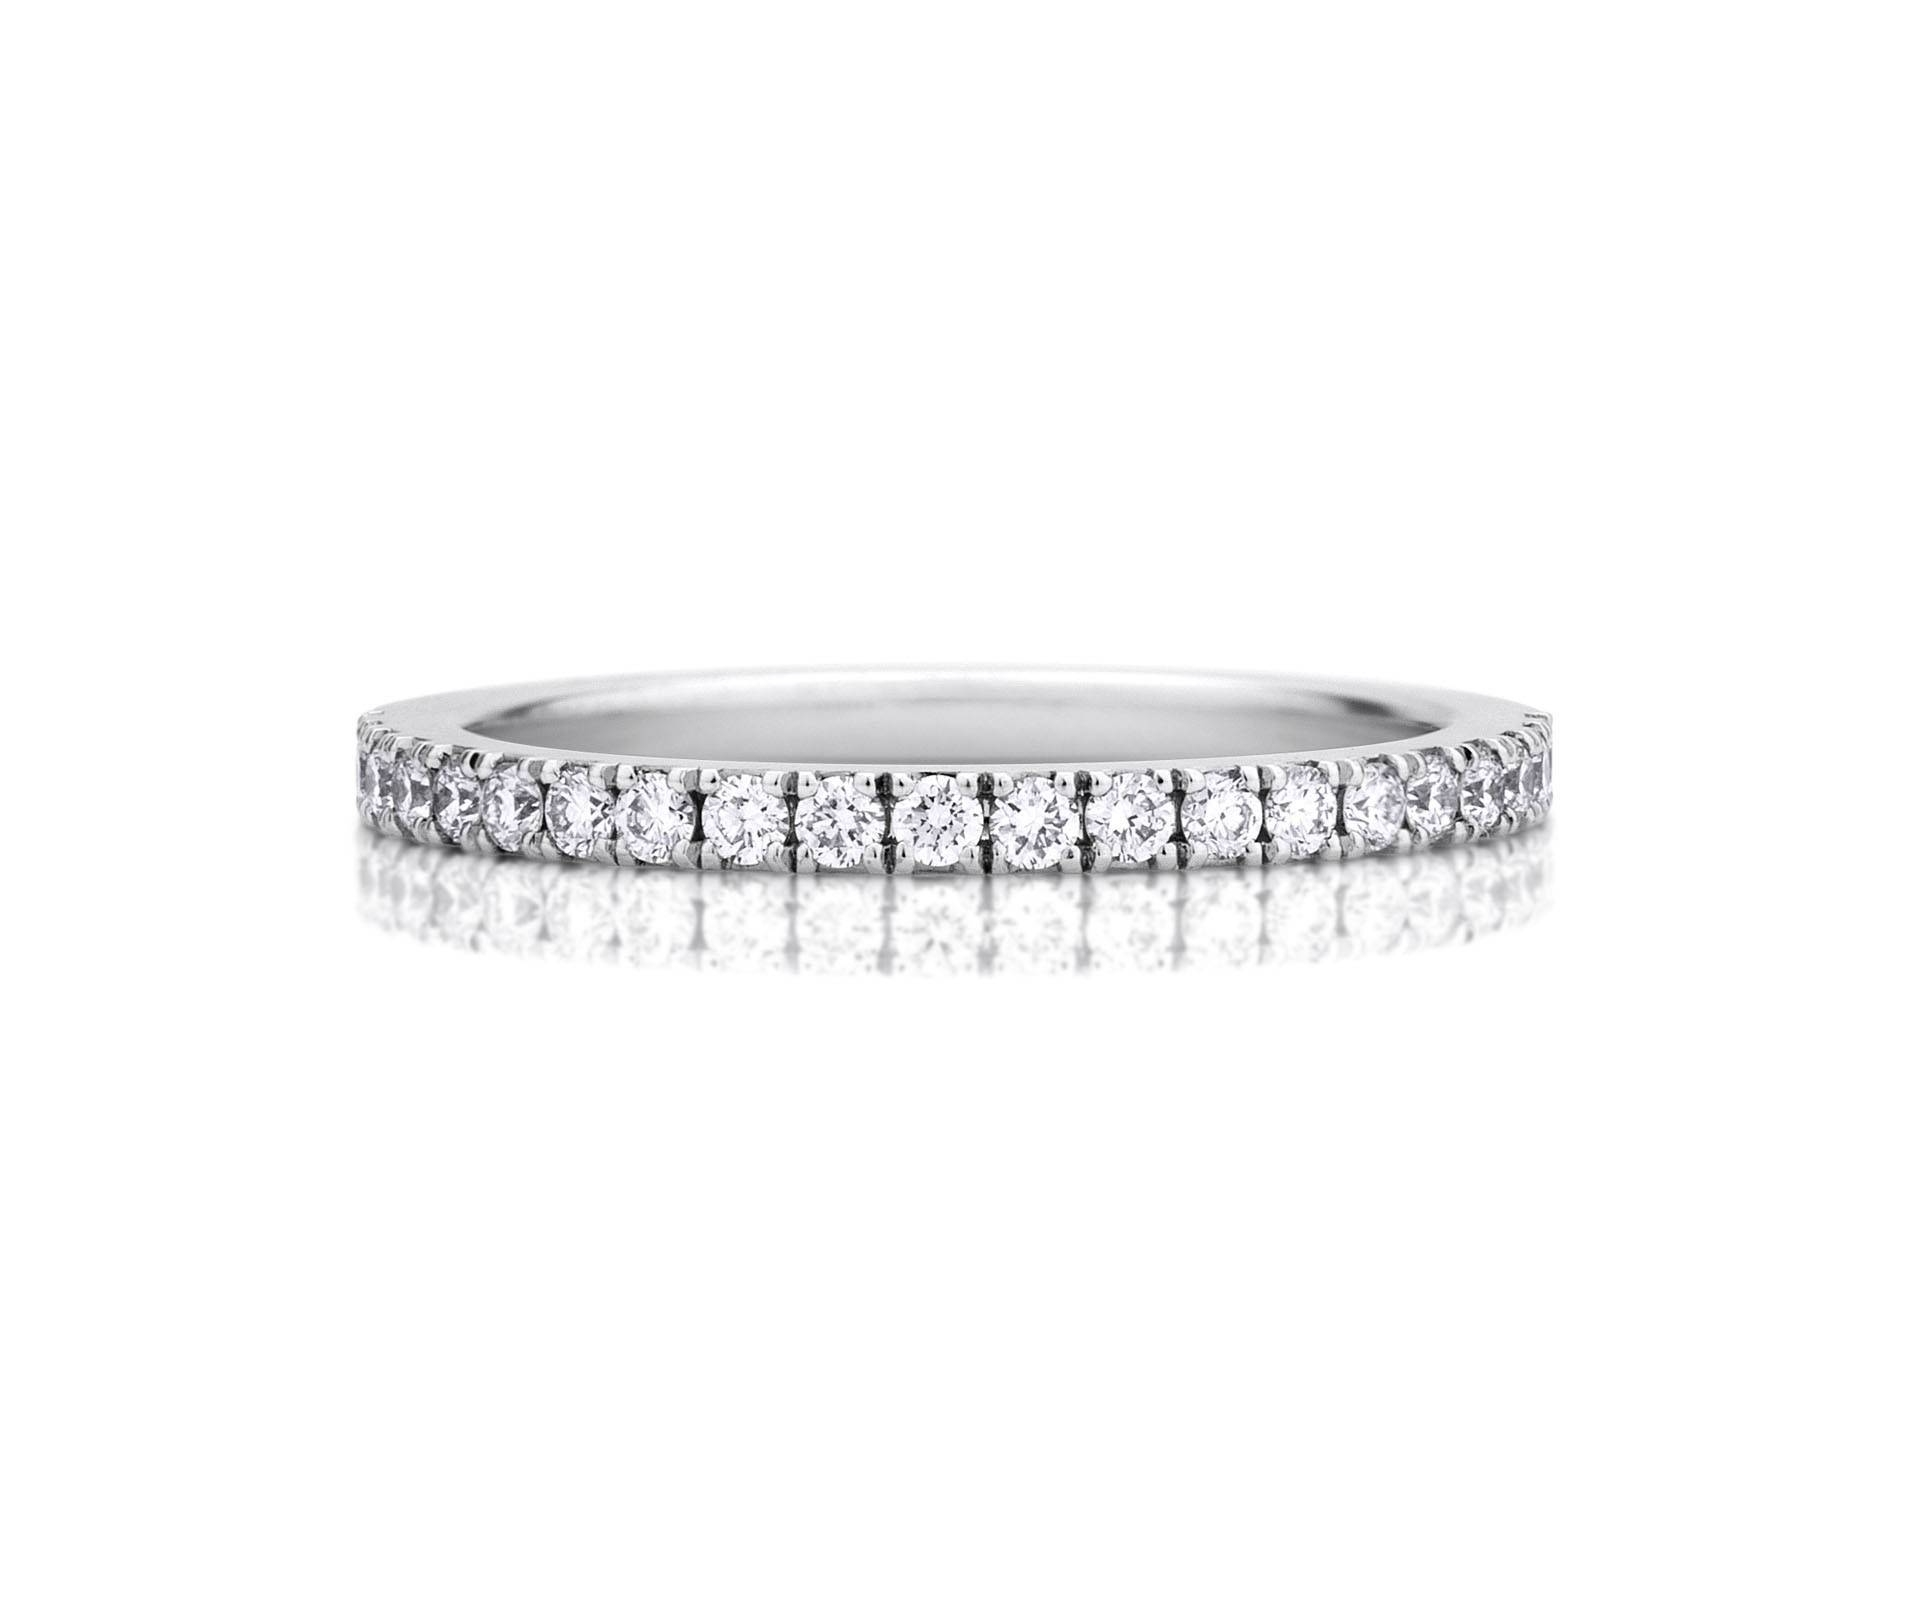 Diamond Wedding Rings & Bands | De Beers With Wedding Rings Bands With Diamonds (View 2 of 15)